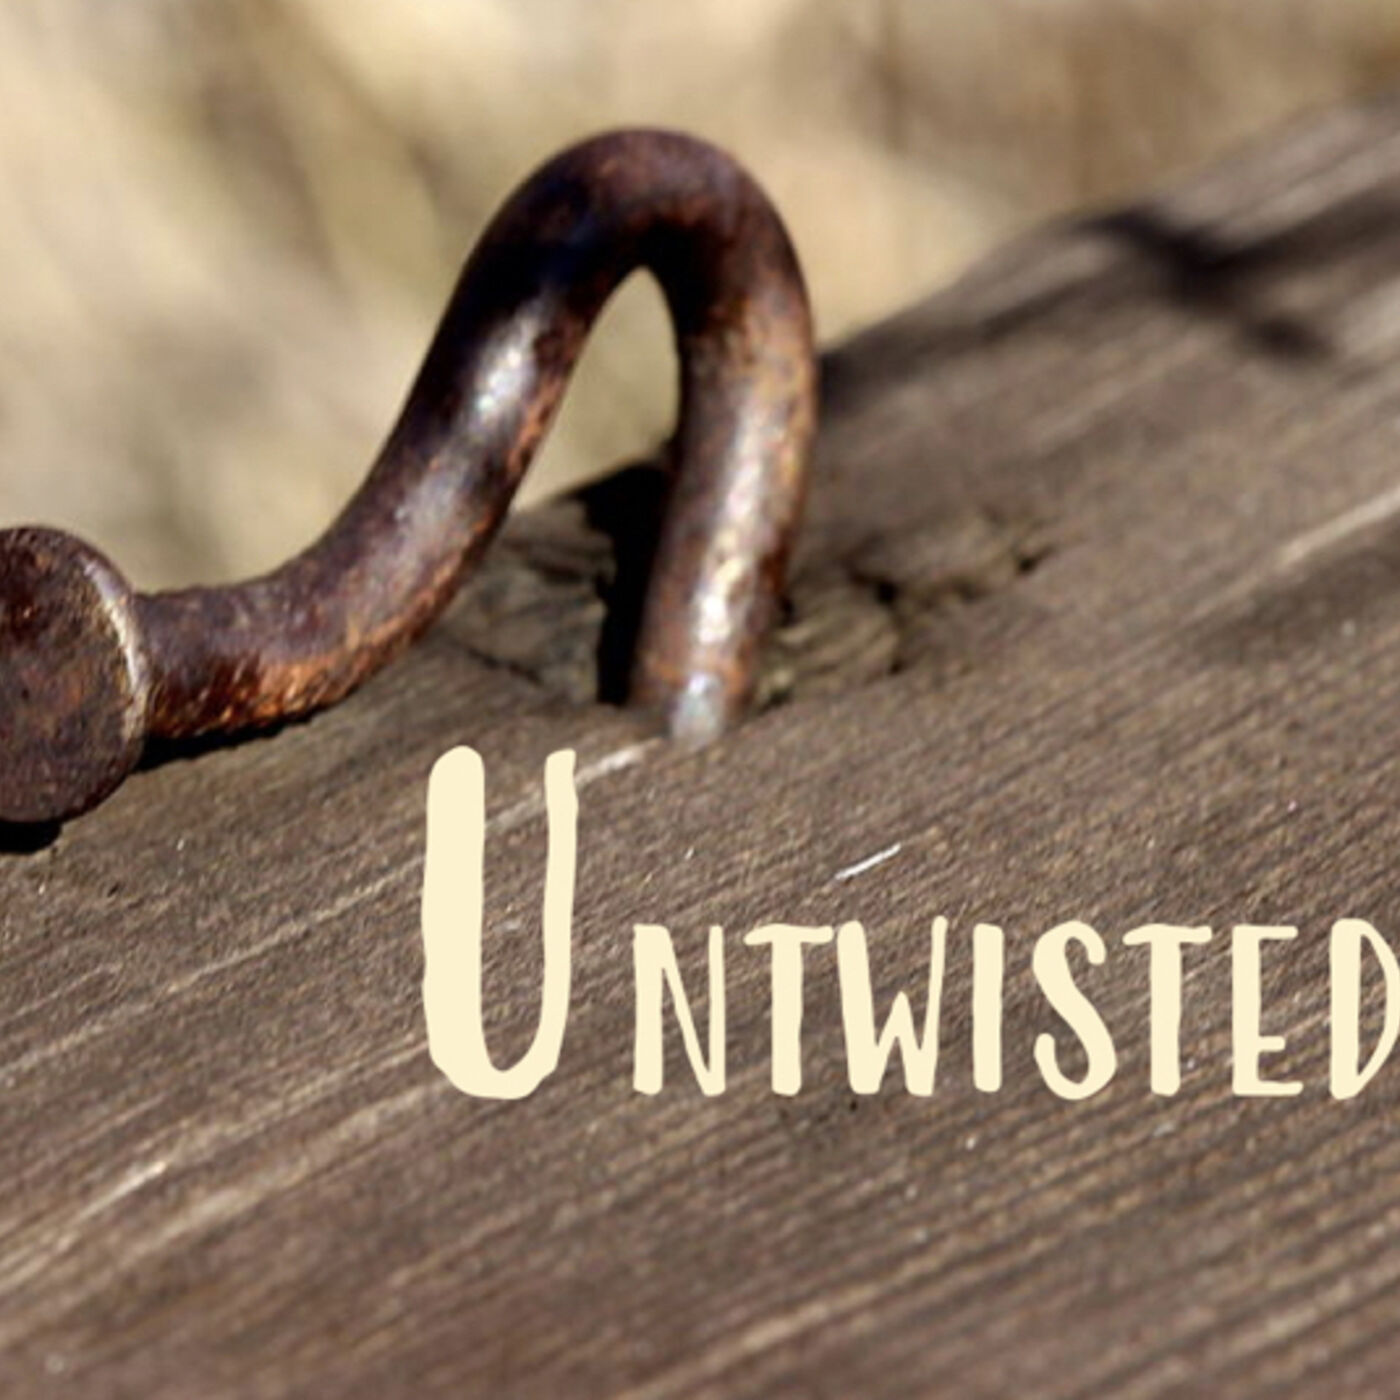 Untwisted: Be Good. Do Good. (Goodness)